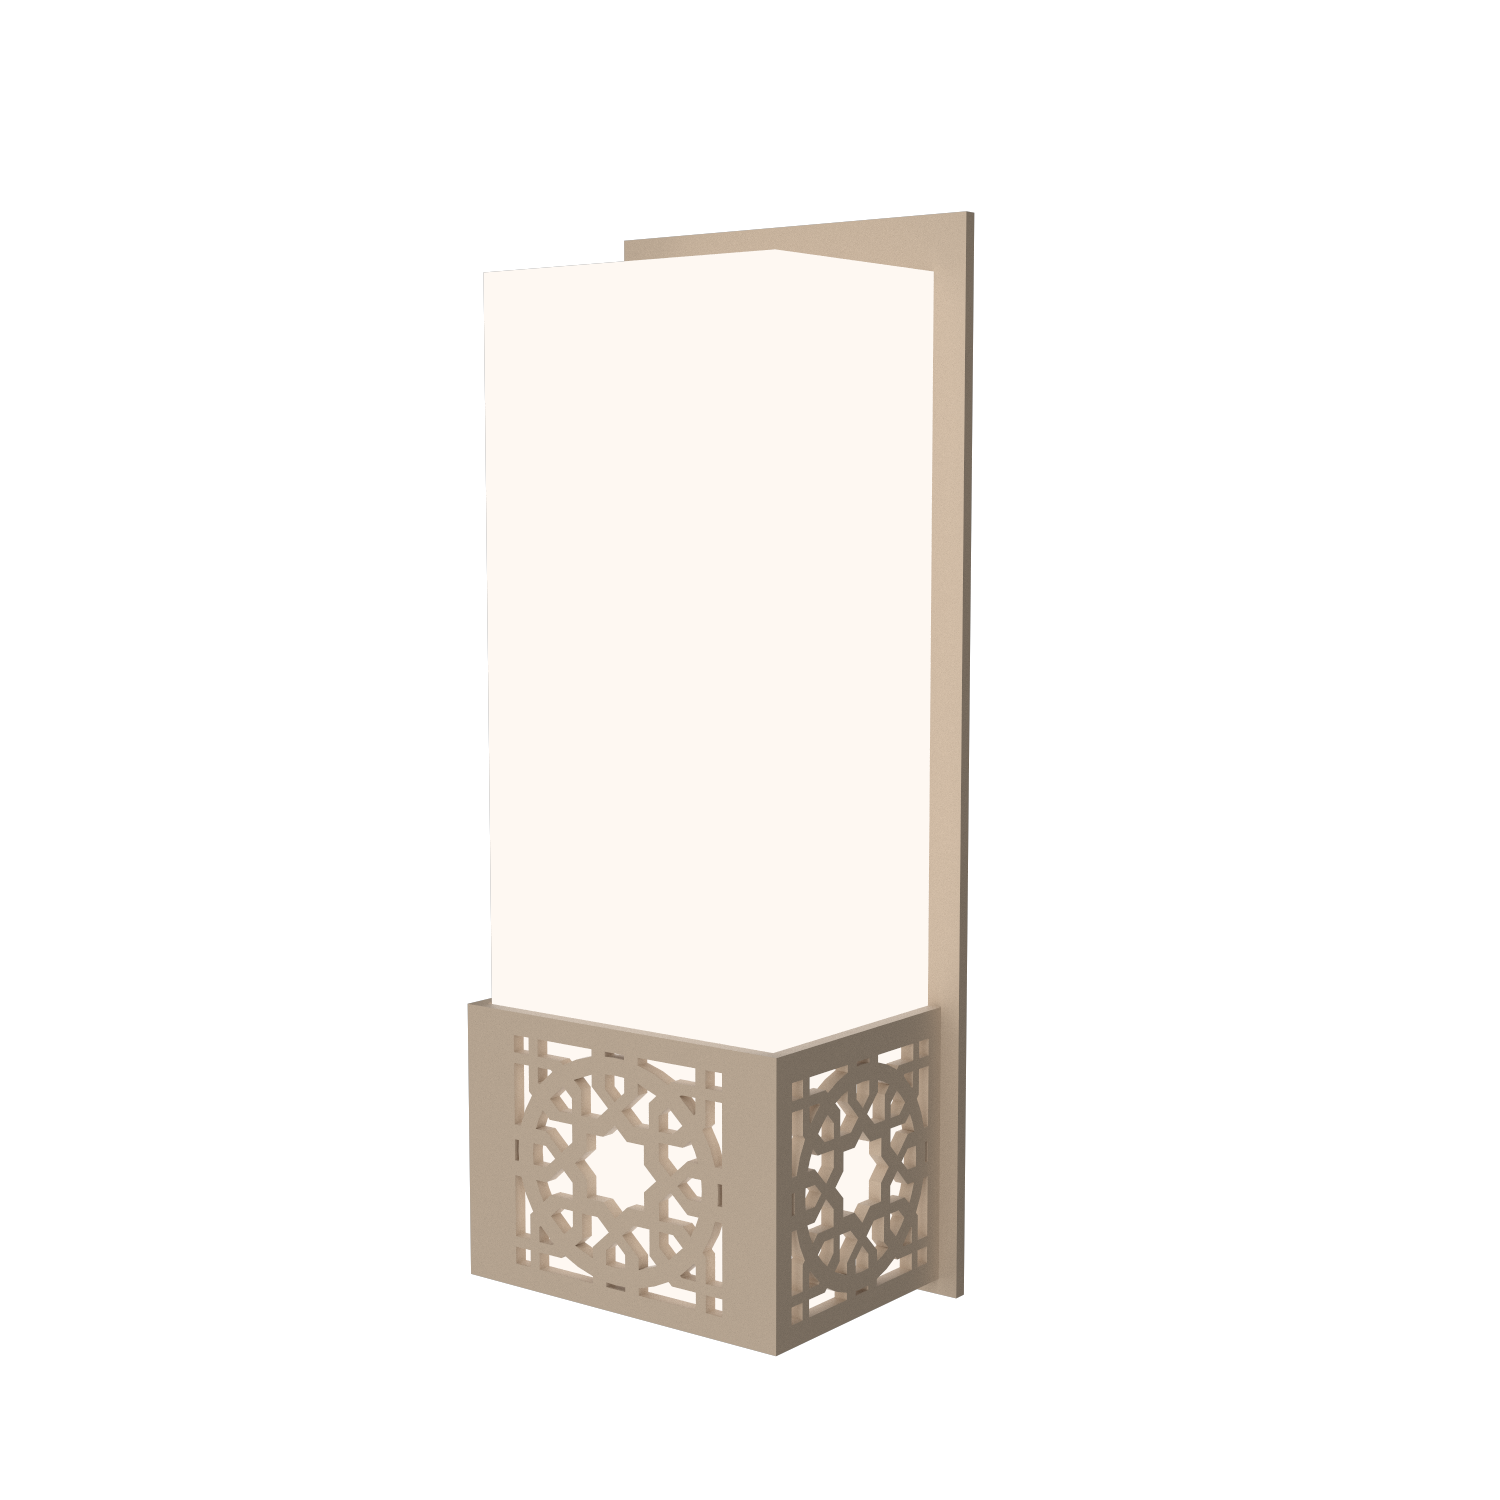 Wall Lamp Accord Patterns 4052 - Patterns Line Accord Lighting | 15. Cappuccino